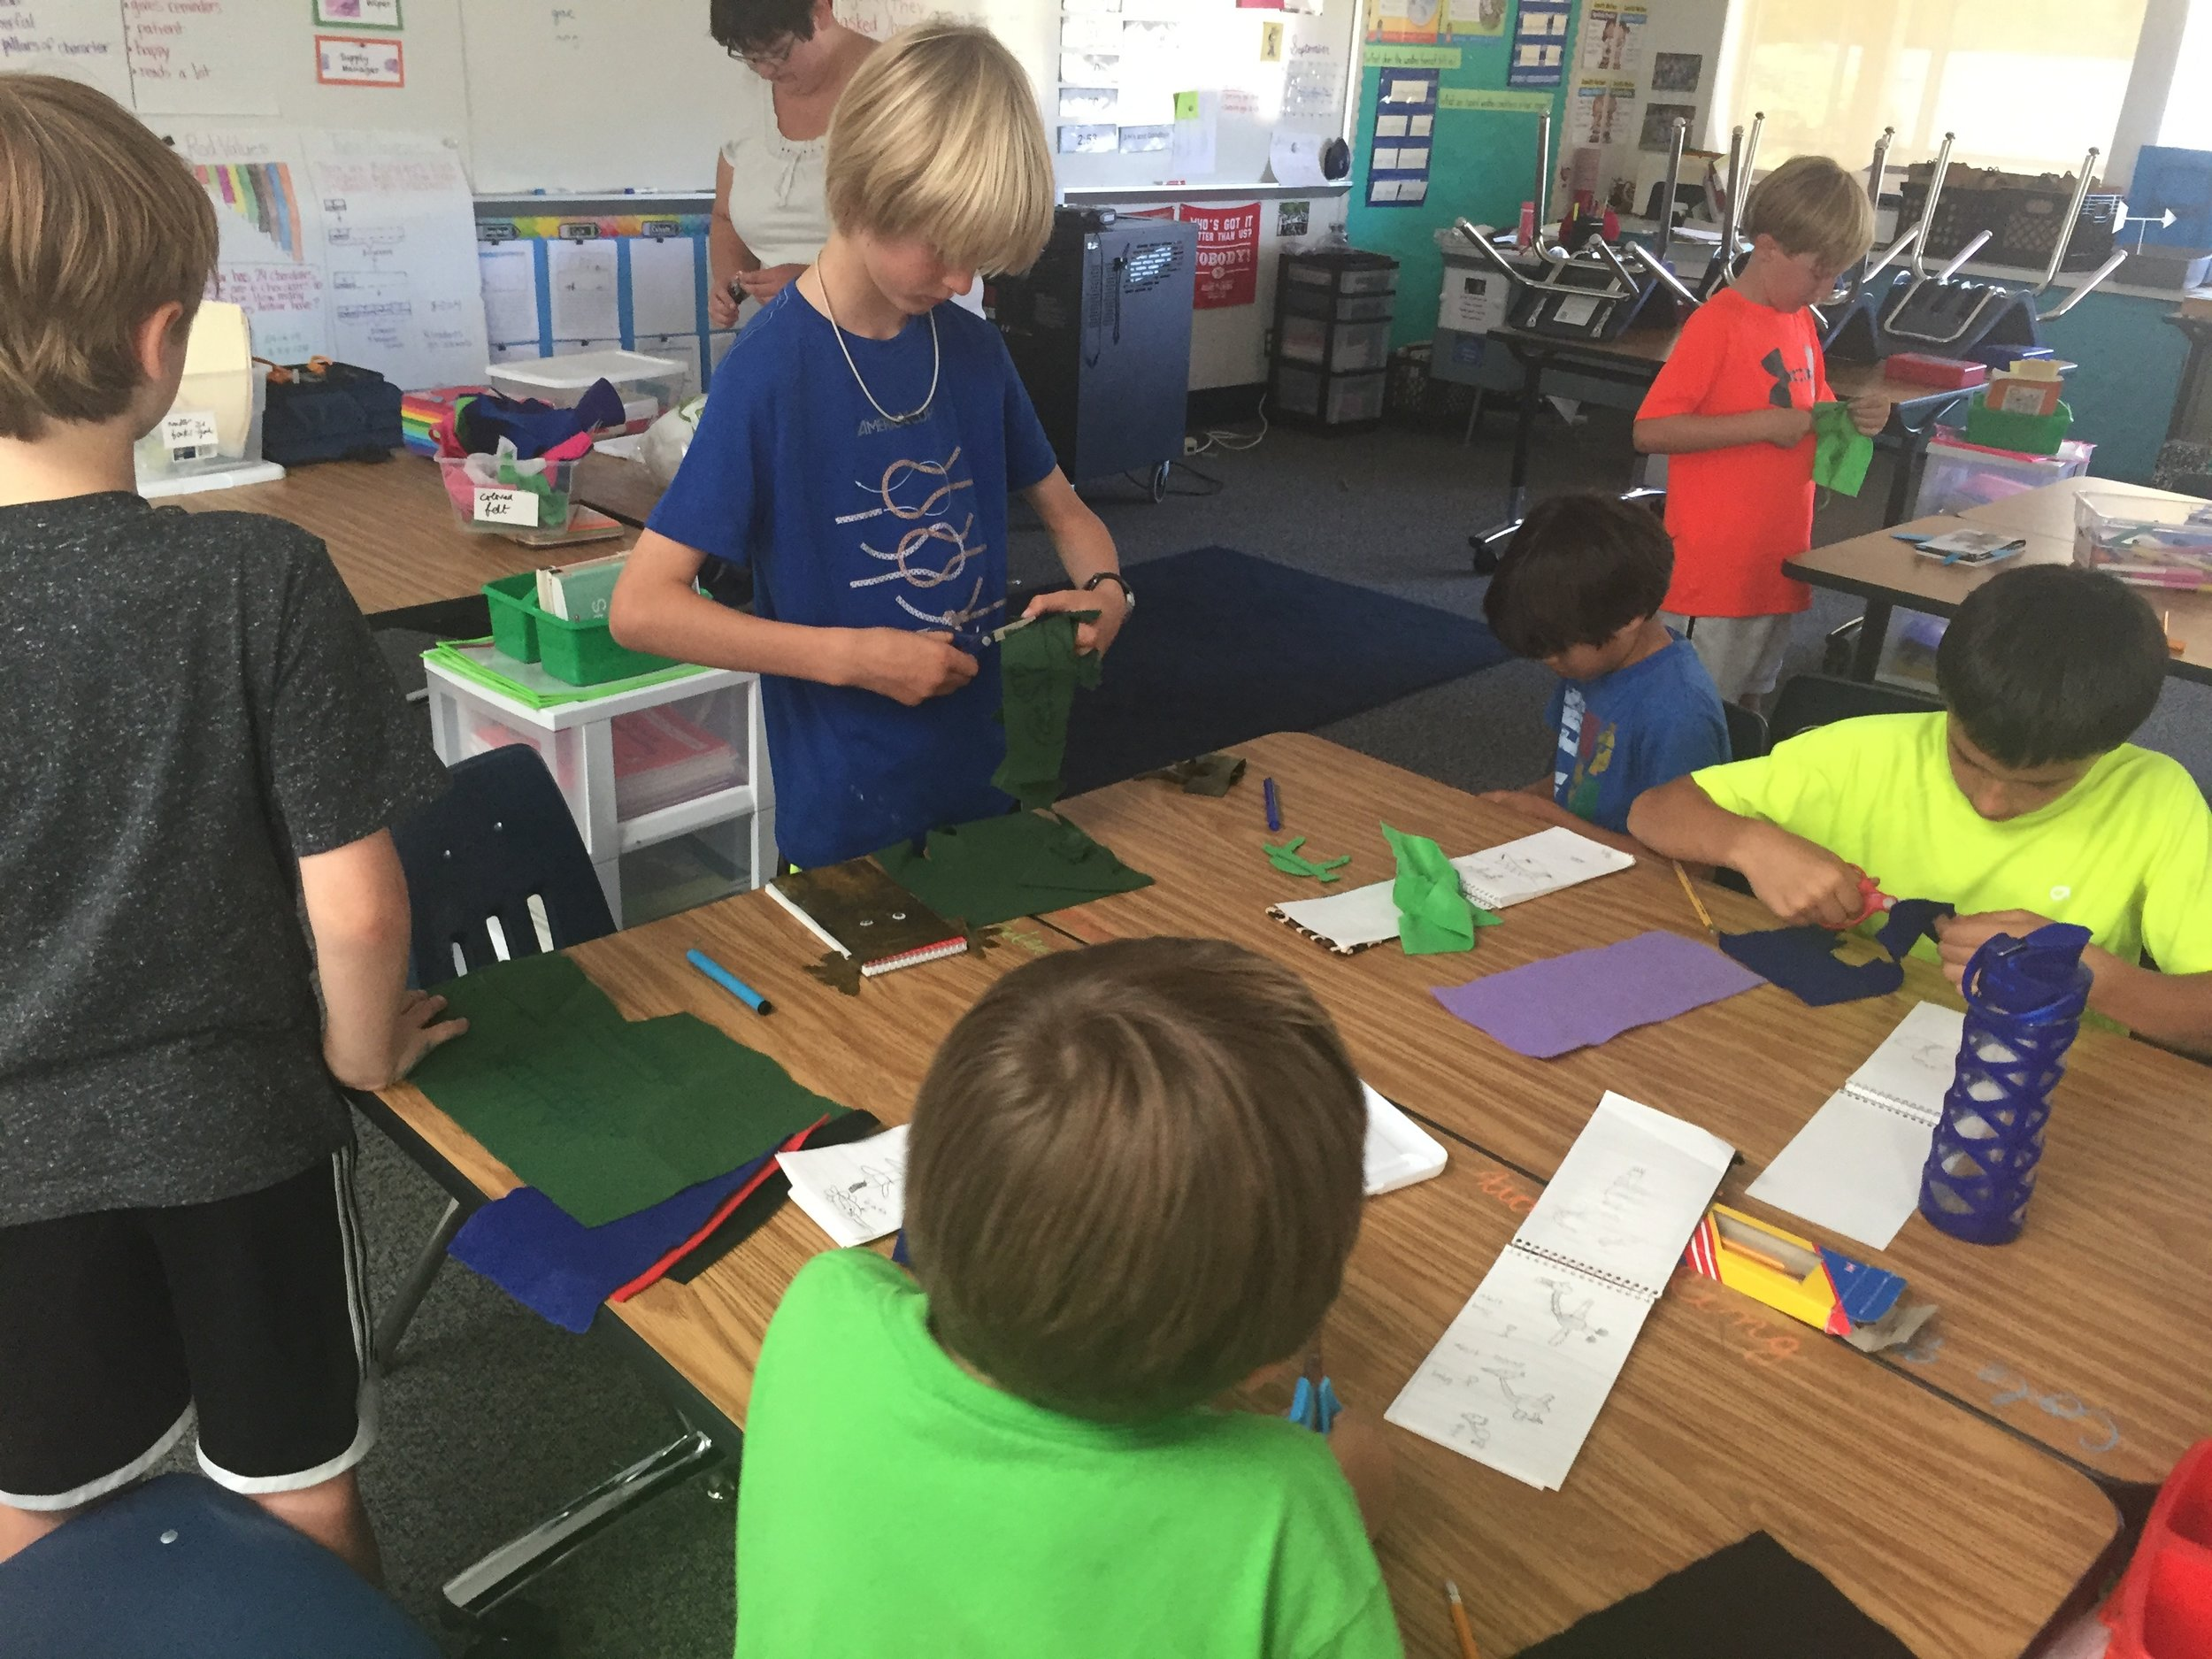 3rd Grade Boys Craft2016-09-27 15.19.31.jpg